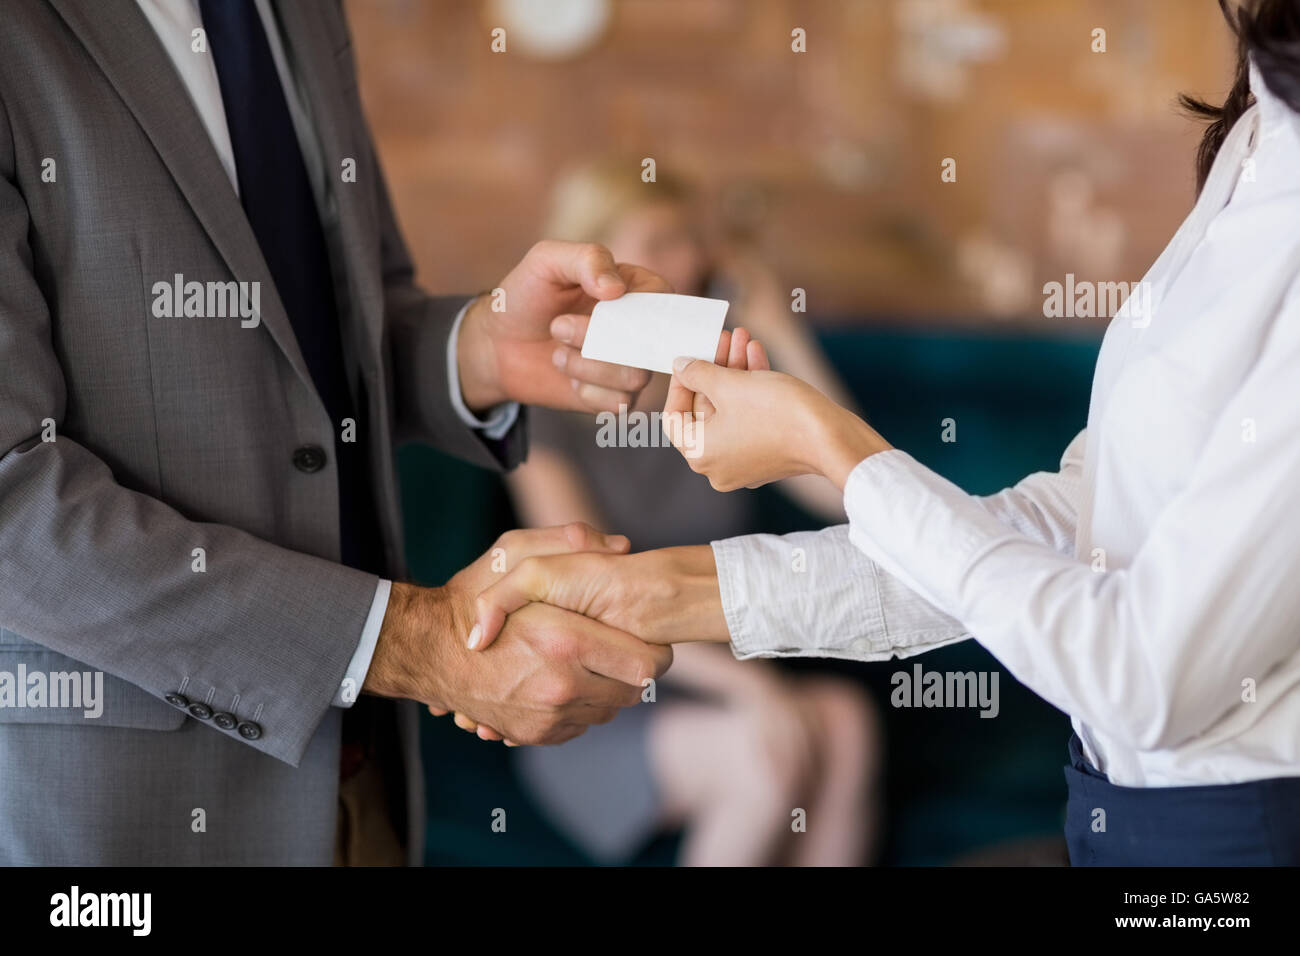 Business colleagues exchanging business card - Stock Image